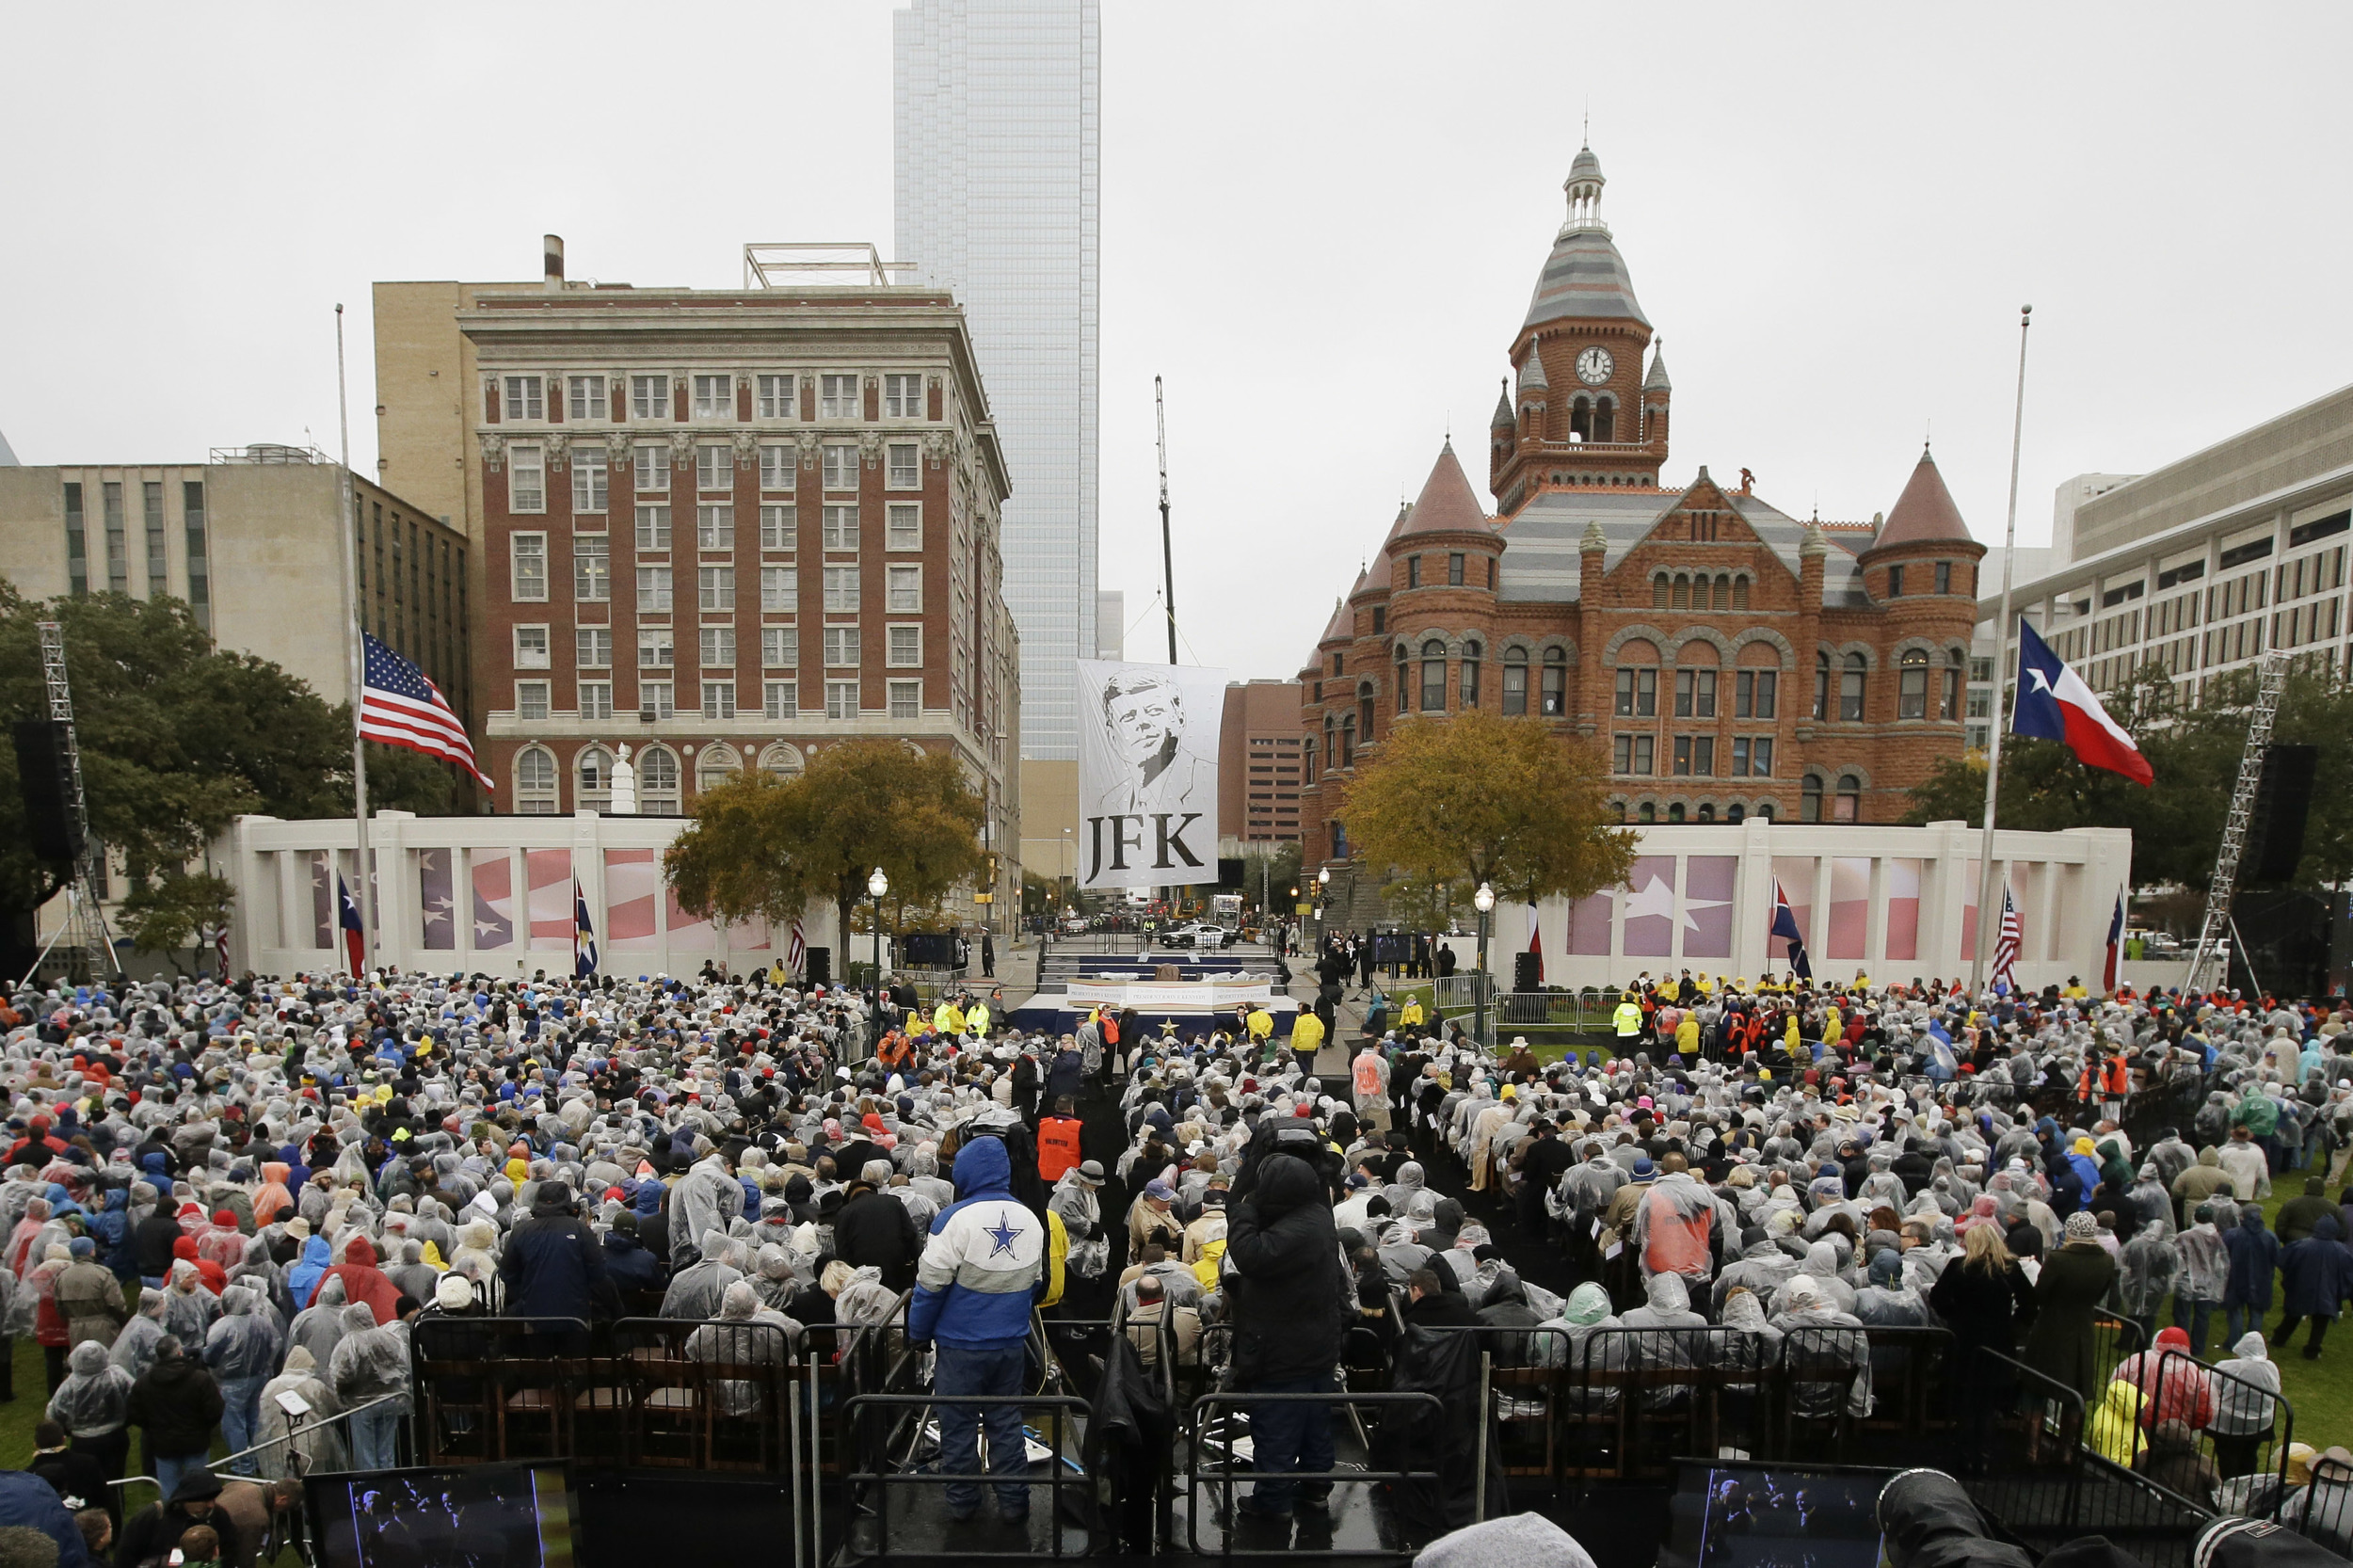 jfk-banner-crowd-1.jpg